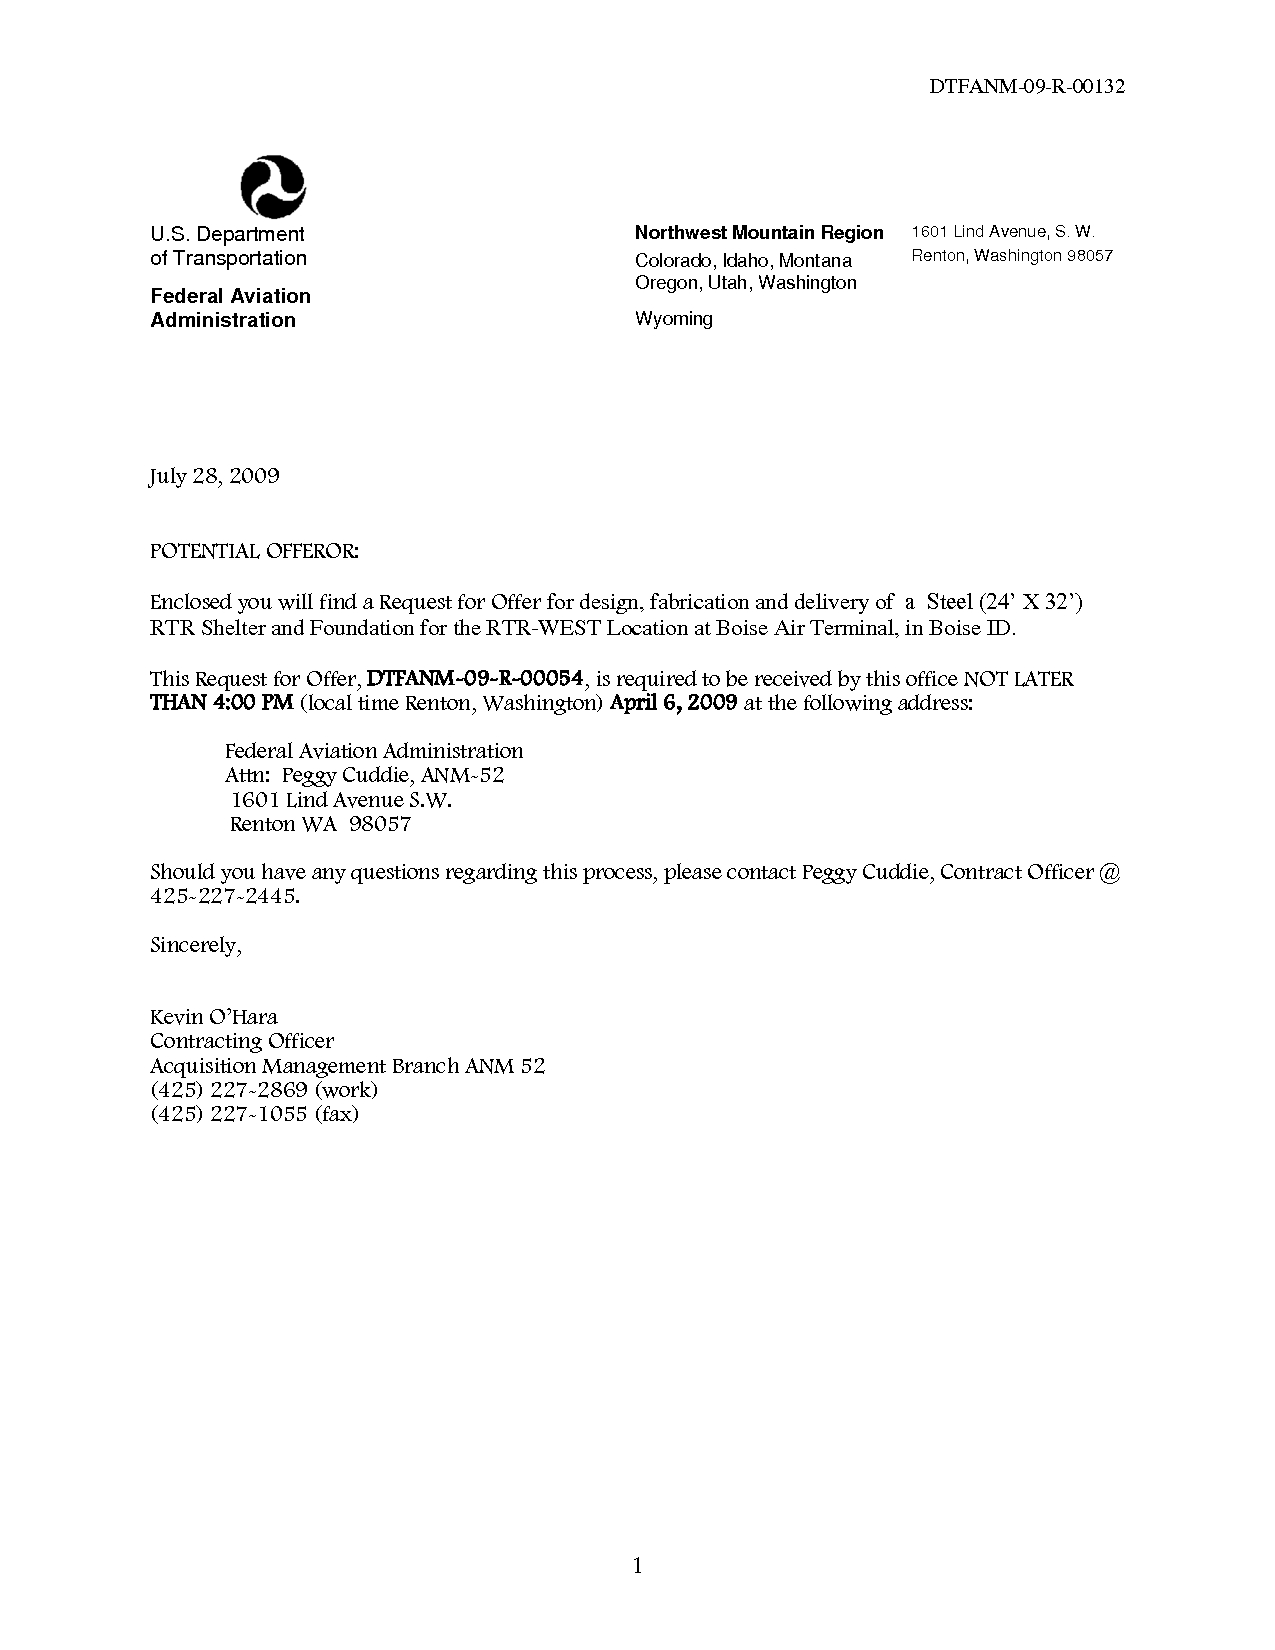 Tenant Reference Letter Template - In E Reference Letter From Employer Letter format formal